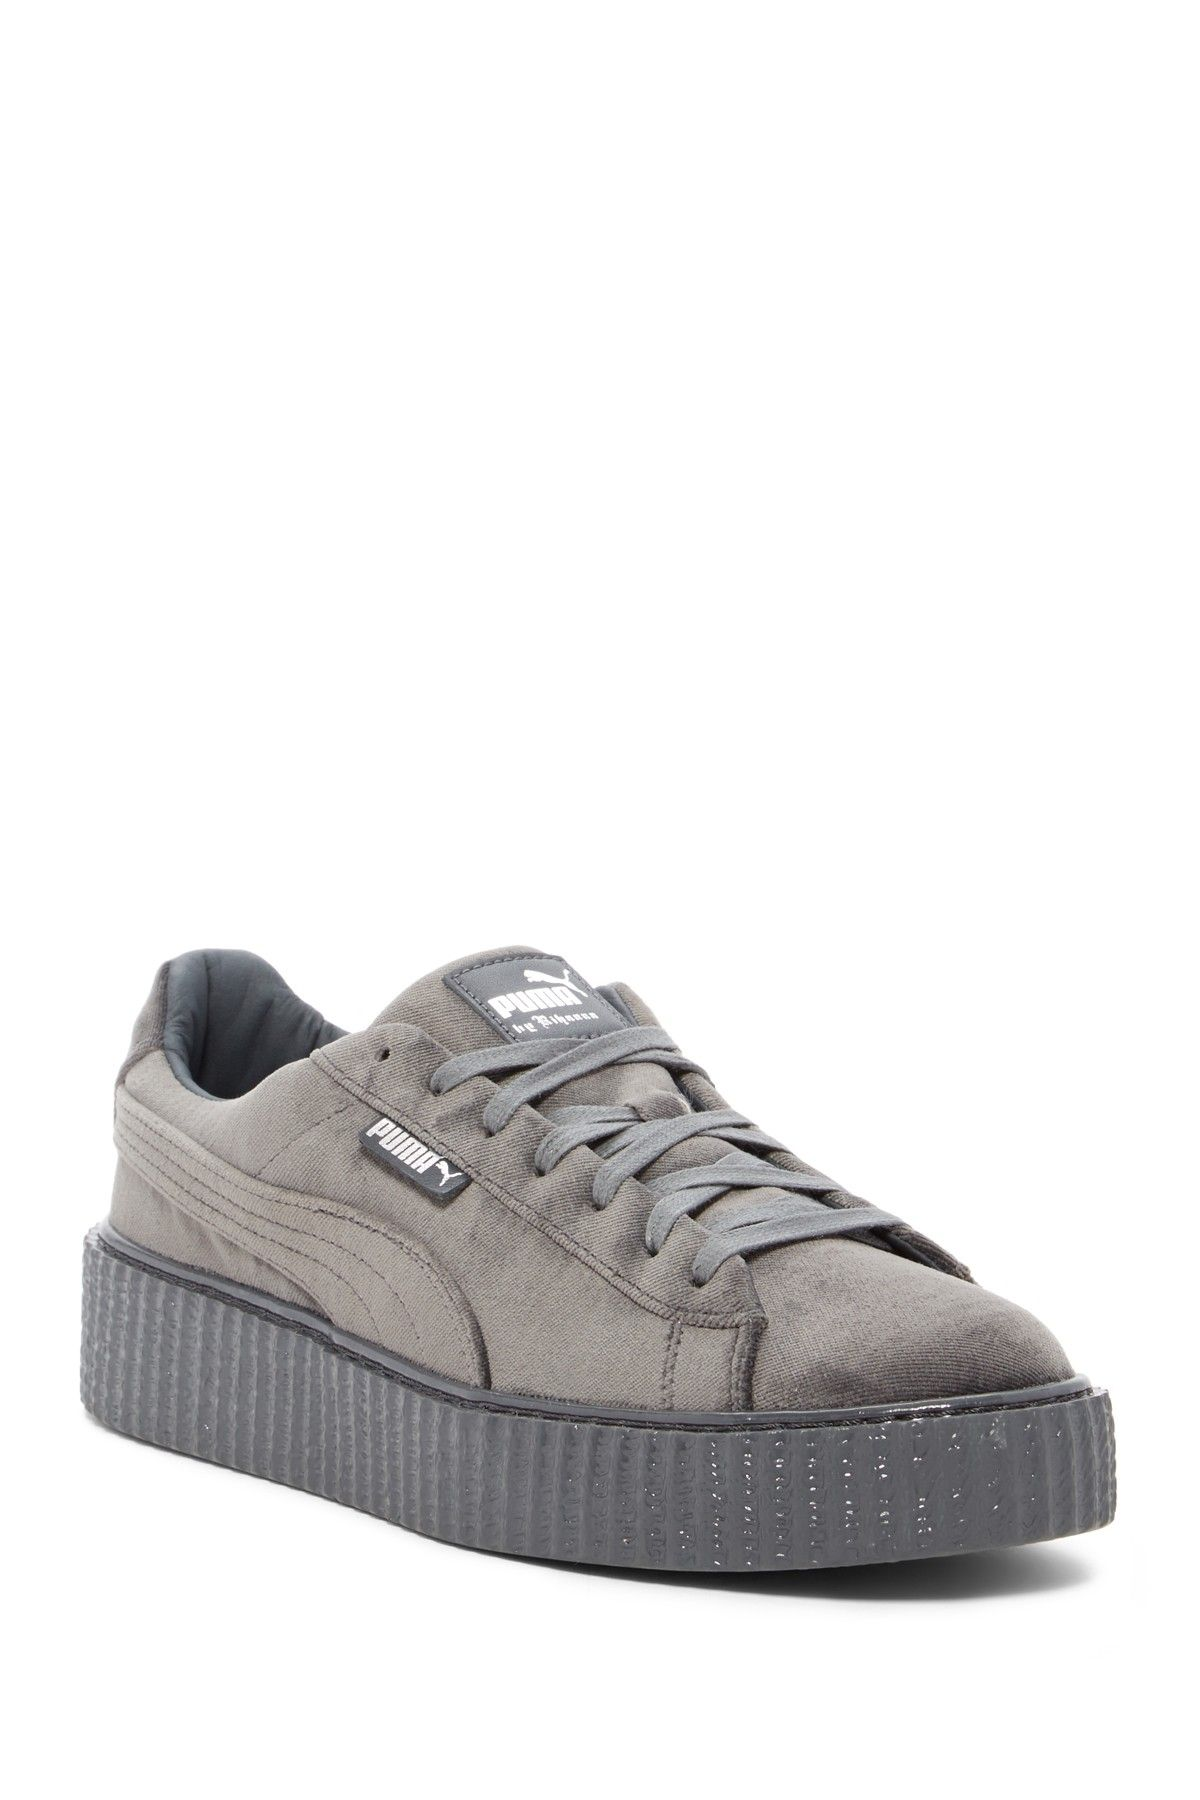 new products e6a9e d96c8 FENTY PUMA by Rihanna Velvet Creeper Leather Sneaker (Unisex ...